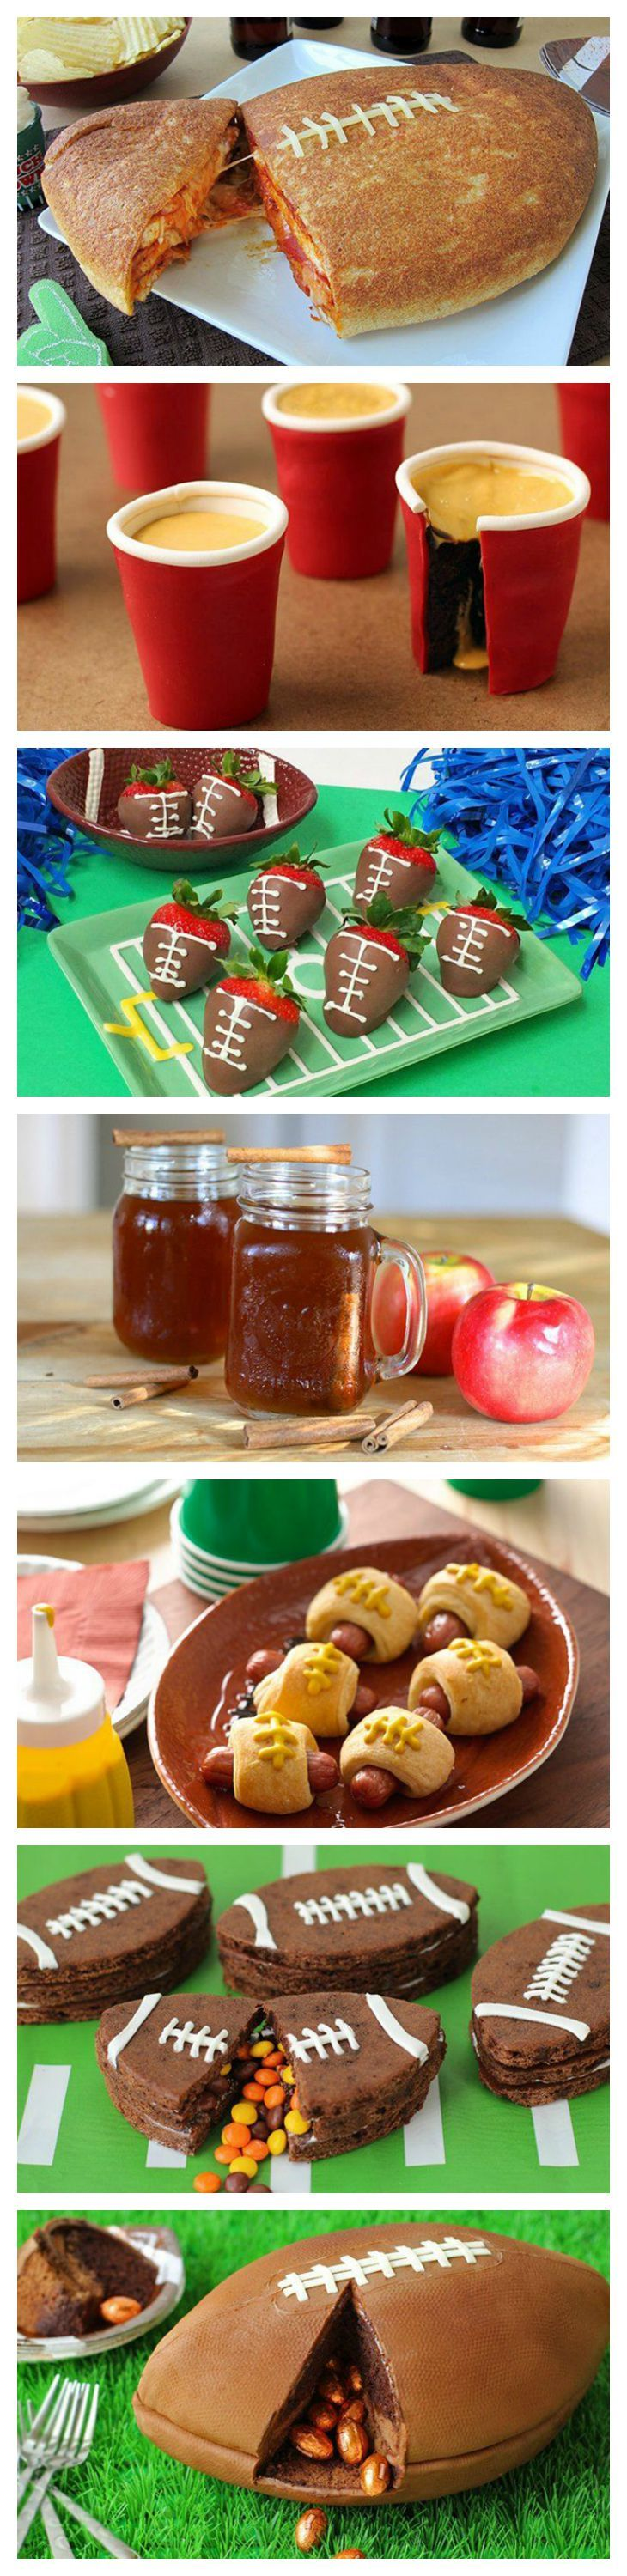 best 25 score of seahawks game ideas on pinterest seahawks game